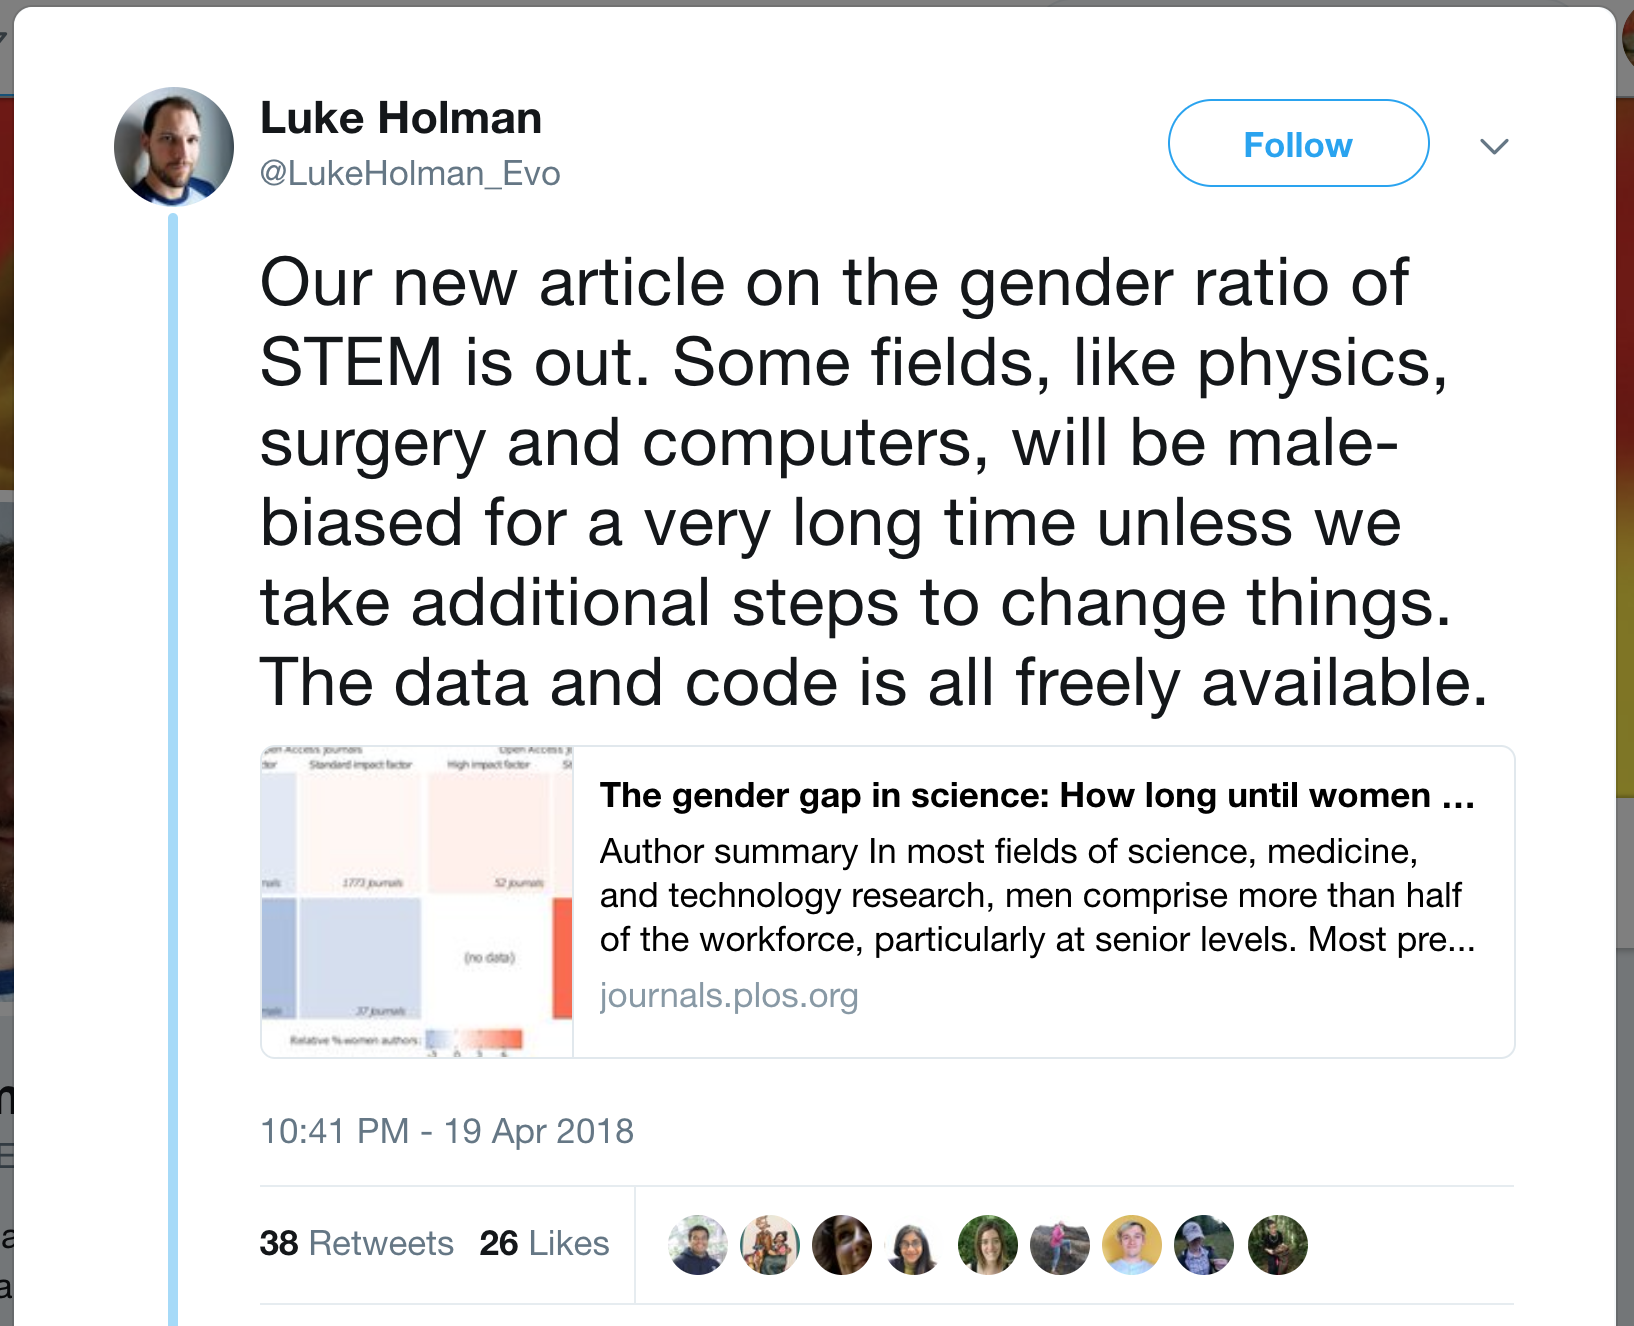 Tweet by Luke Holman